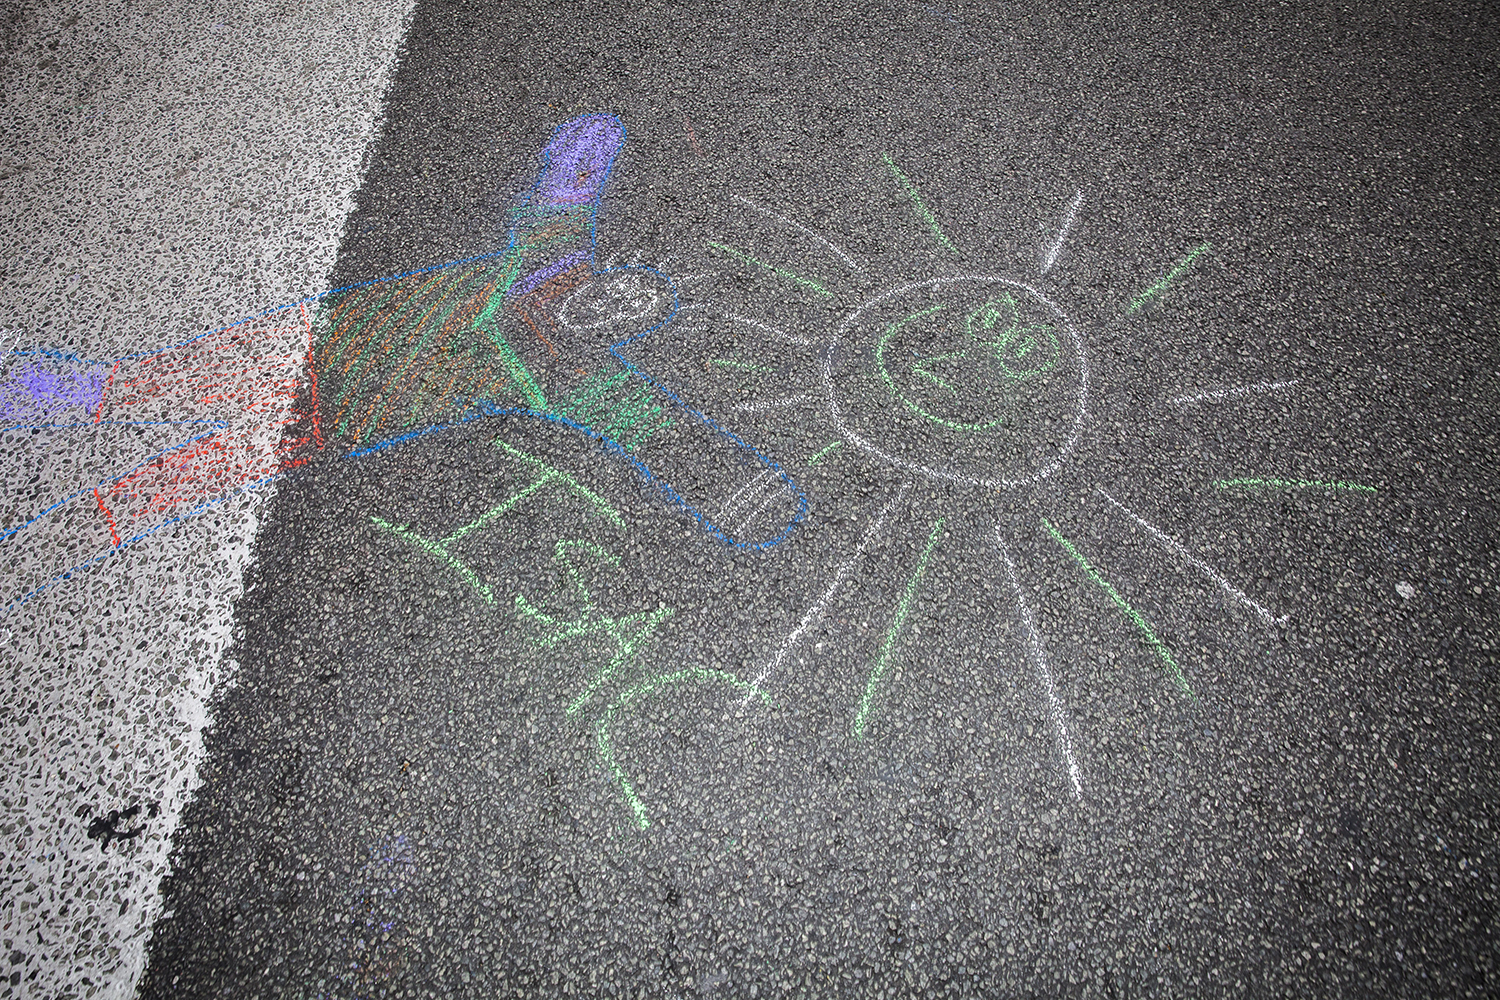 chalk_painting_day_18-09-16_helenalundquist_19